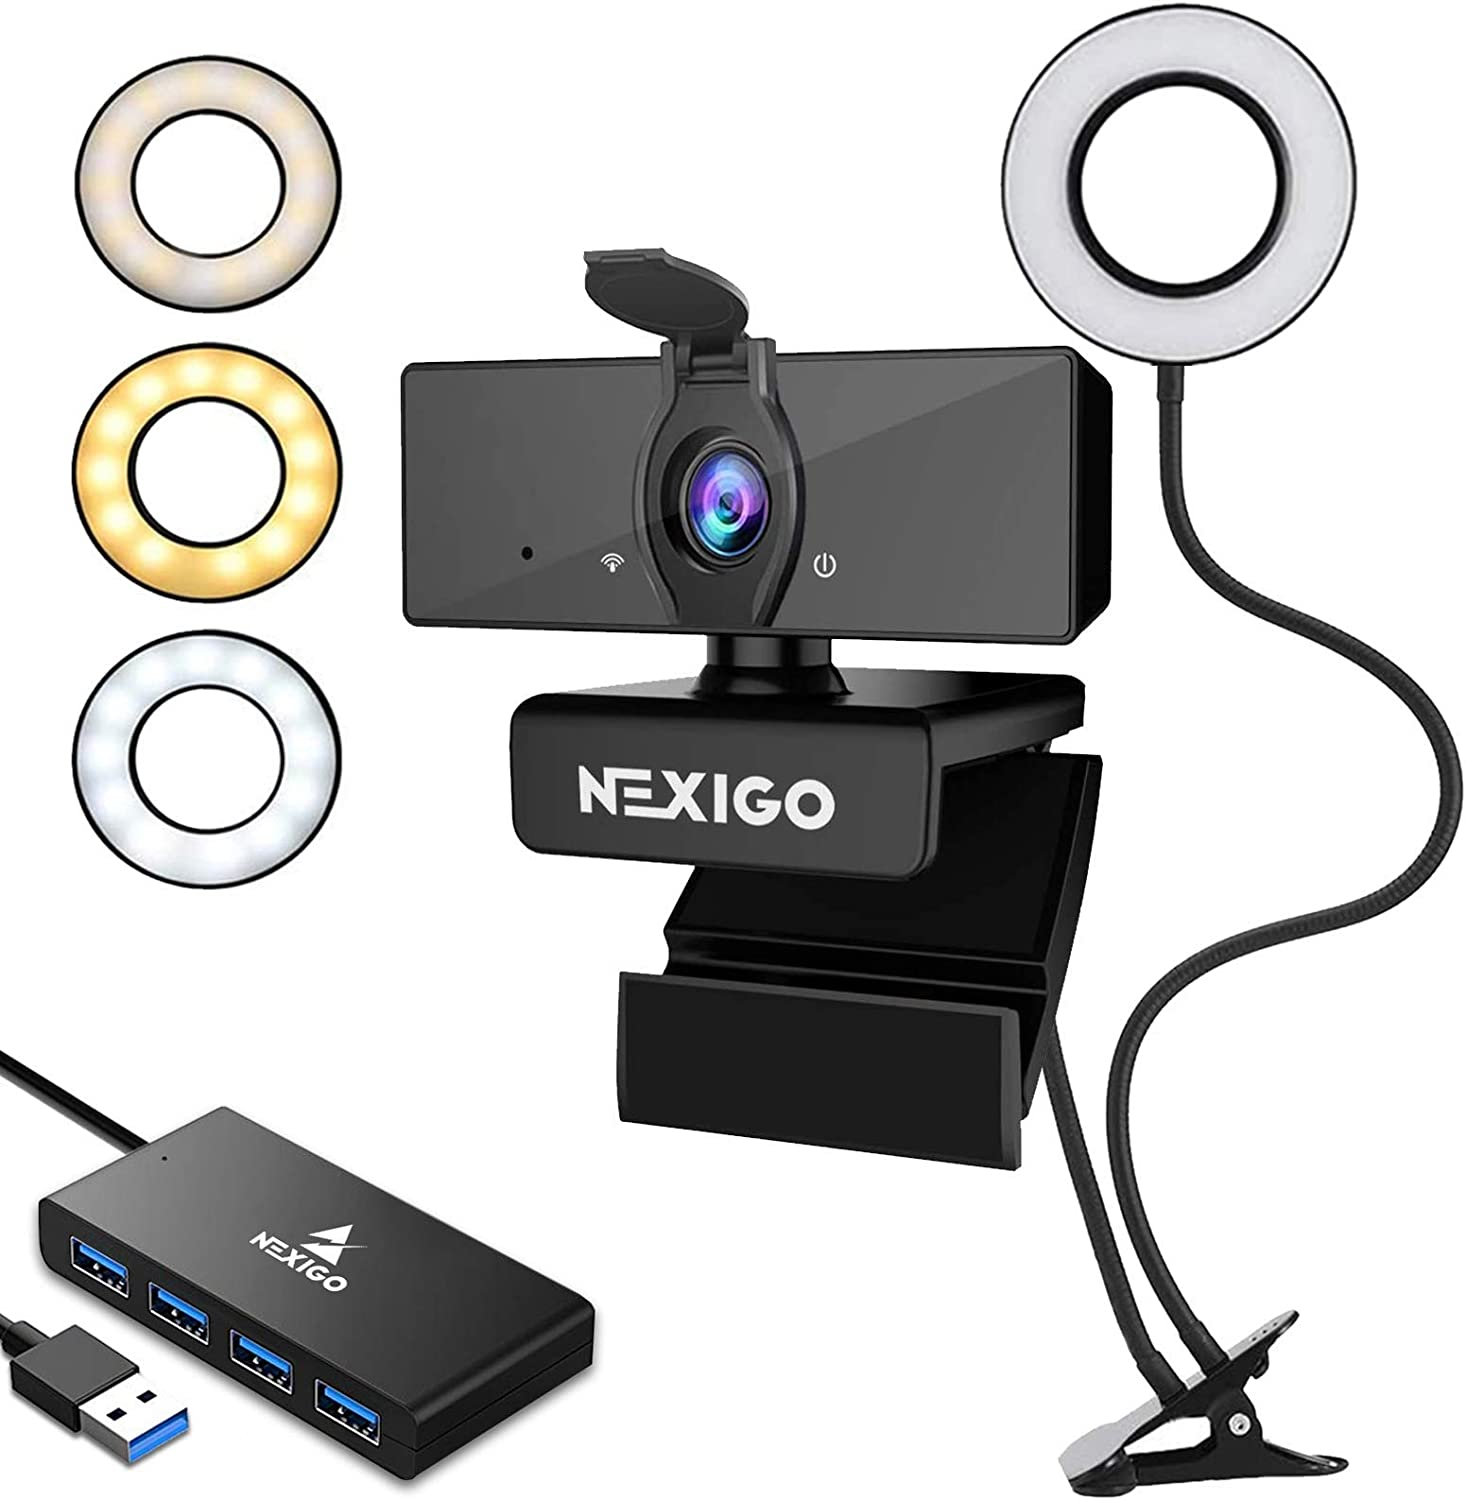 2020 Streaming Kit, 1080P Webcam with 2ft 4-Port USB 3.0 Hub, Microphone, 3.5 Inch Selfie Ring Light, Mount Stand, and Privacy Cover, for Online Class, Zoom Skype MS Teams, PC Mac Laptop Desktop